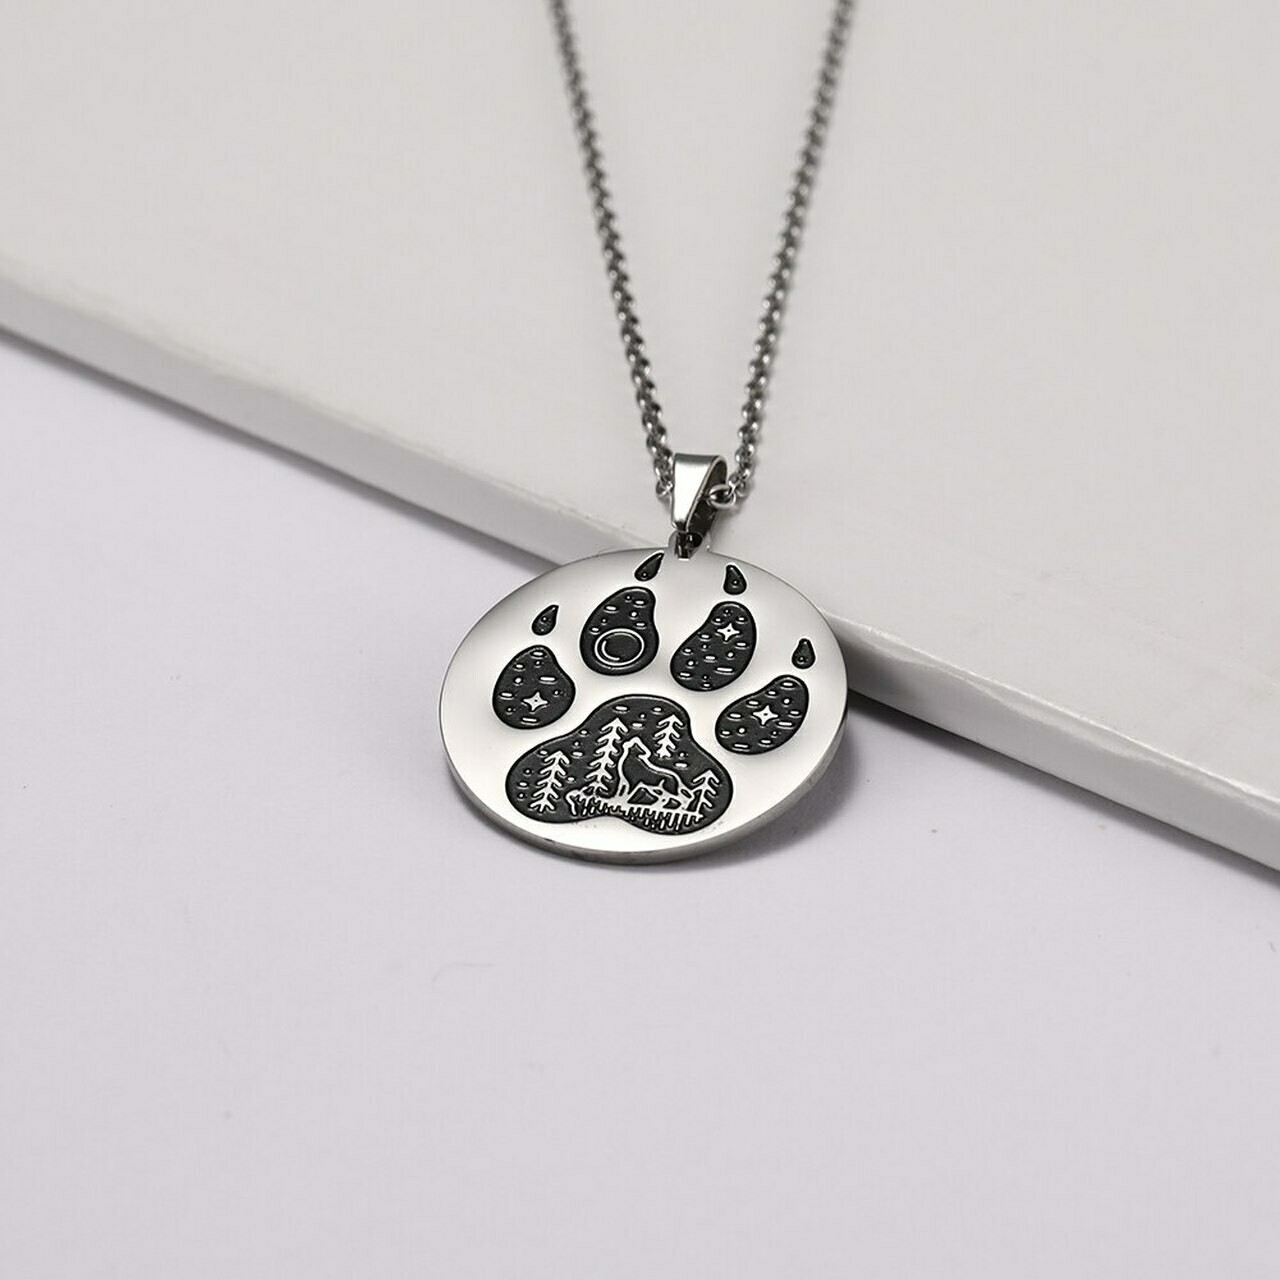 Necklace - Paw Print w/Scene